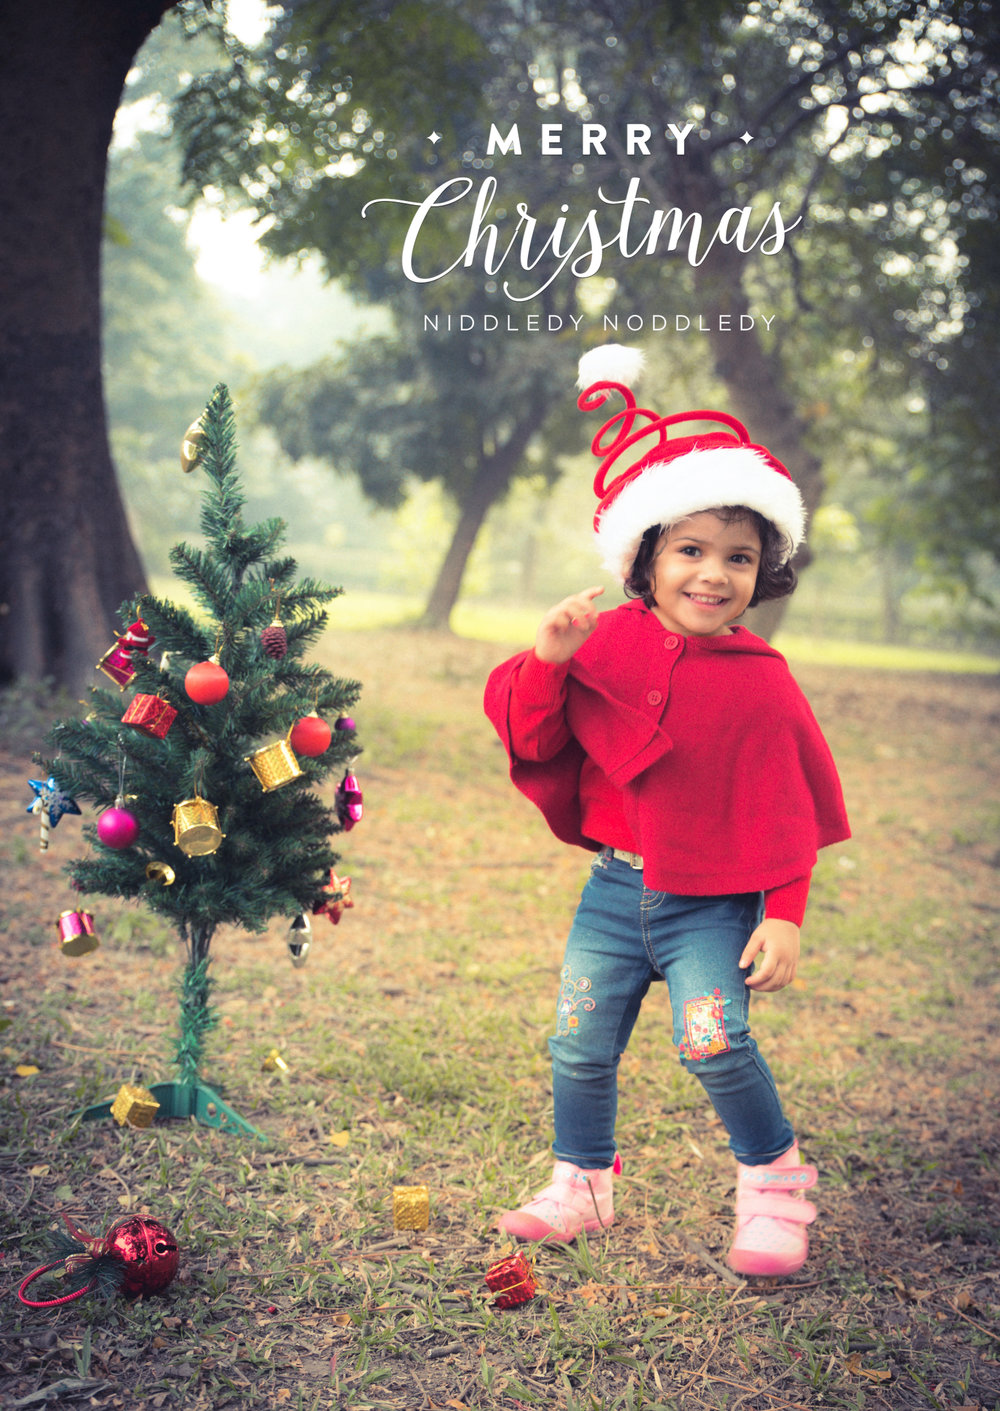 Merry Christmas 2016 Photoshoot ❤ NiddledyNoddledy.com ~ Bumps to Babies Photography, Kolkata.jpg